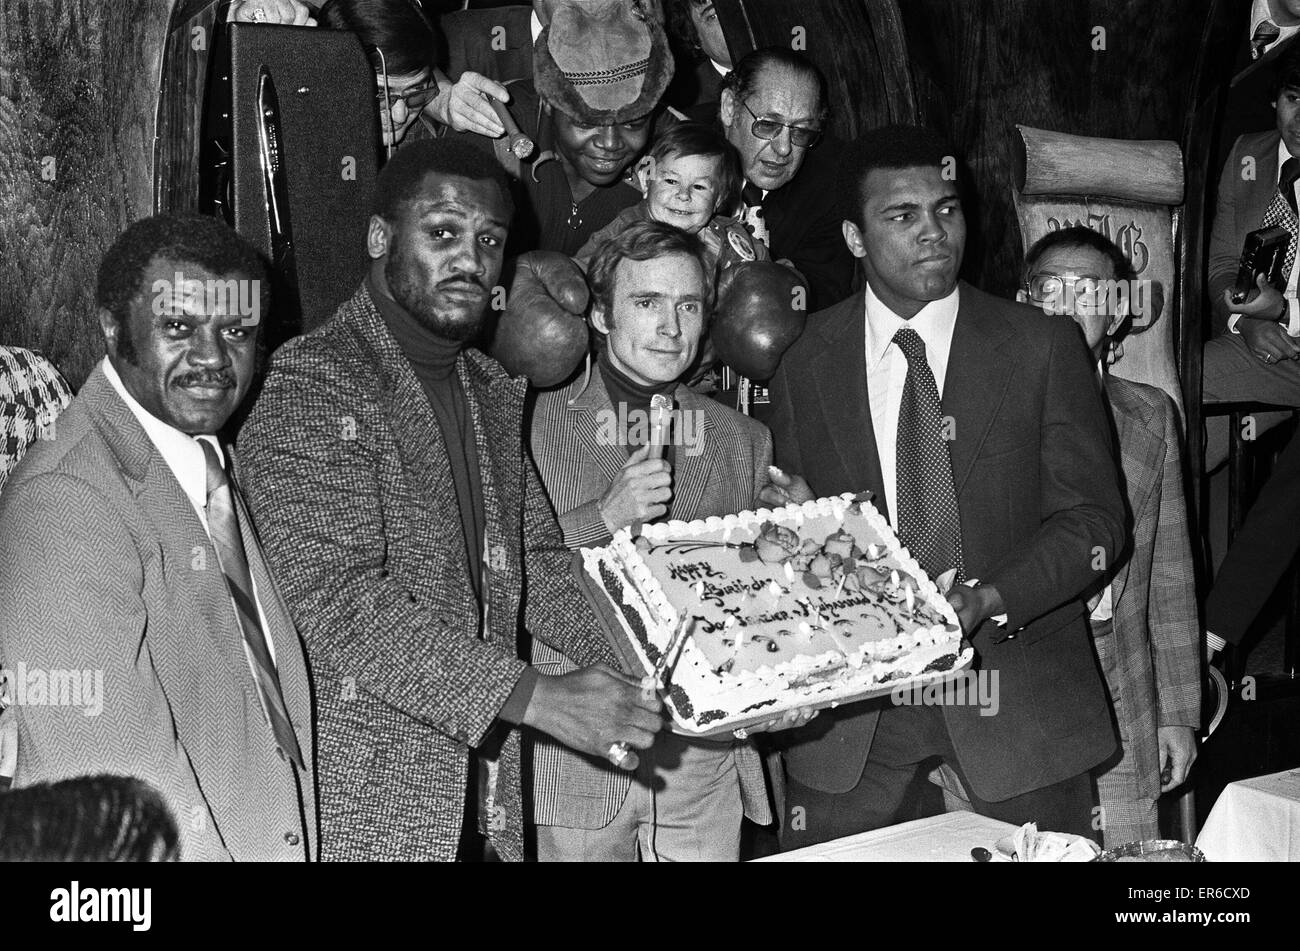 Boxers Party attended by fighters Joe Frazier (second left) and Muhammad Ali (right). 18th January 1974 - Stock Image